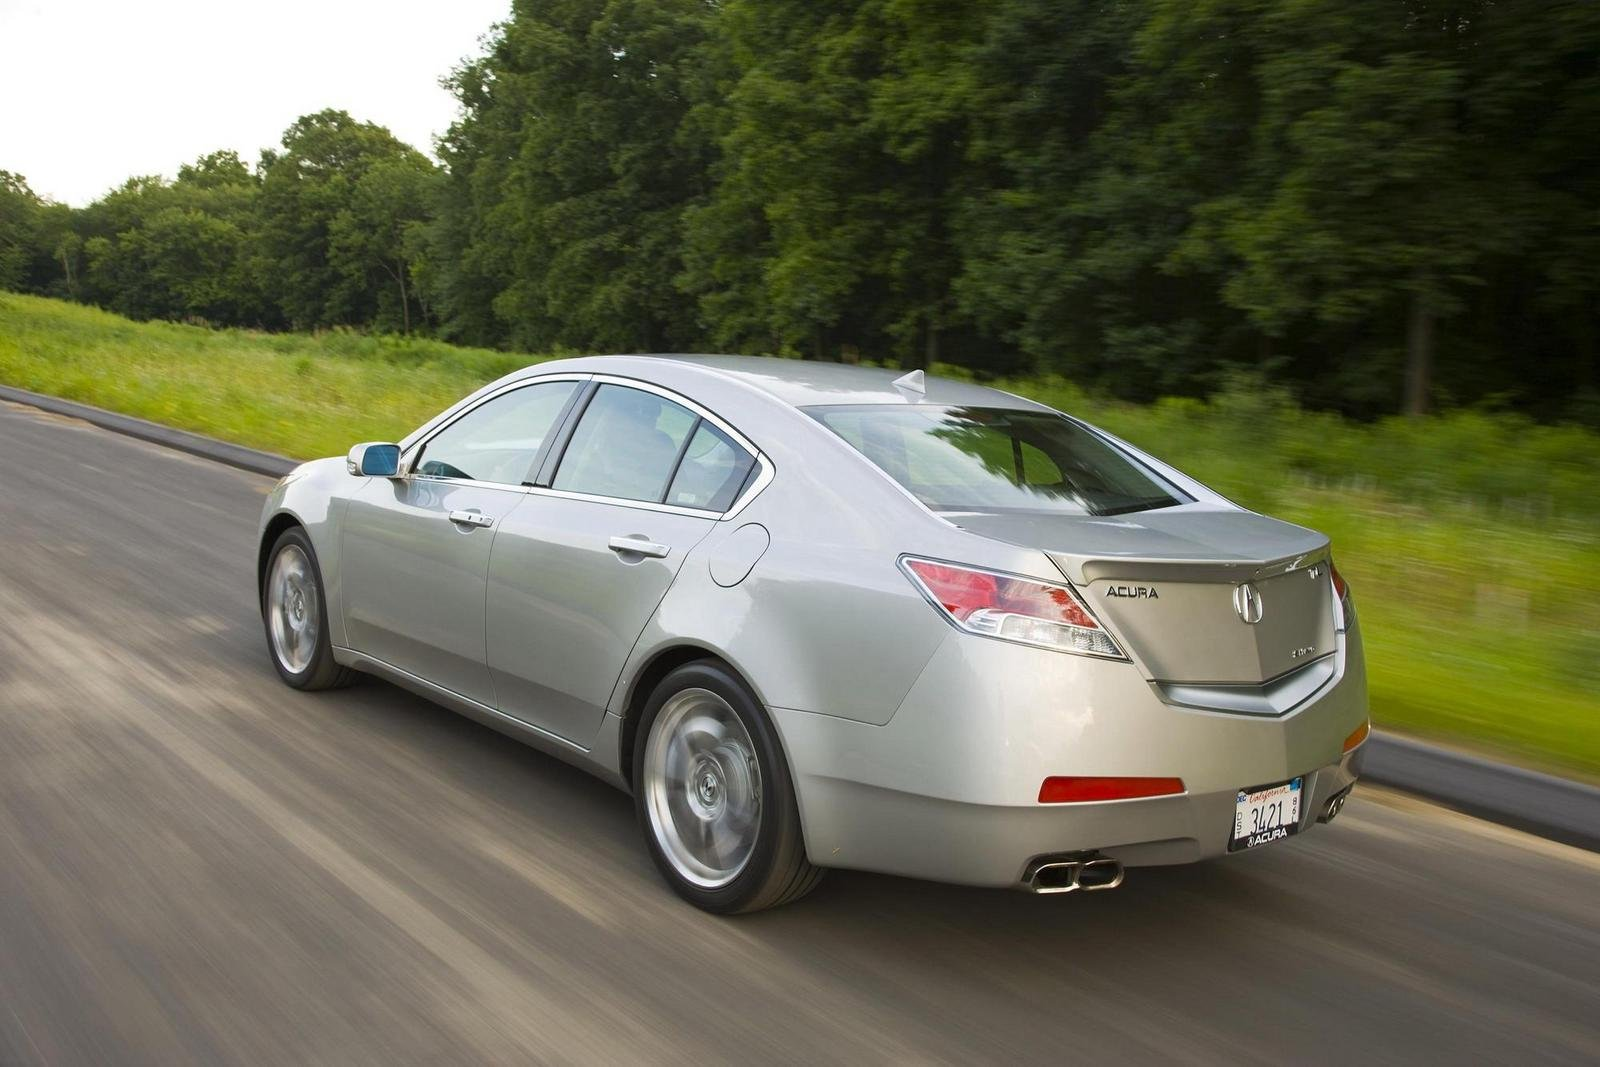 2010 acura tl picture 326184 car review top speed. Black Bedroom Furniture Sets. Home Design Ideas